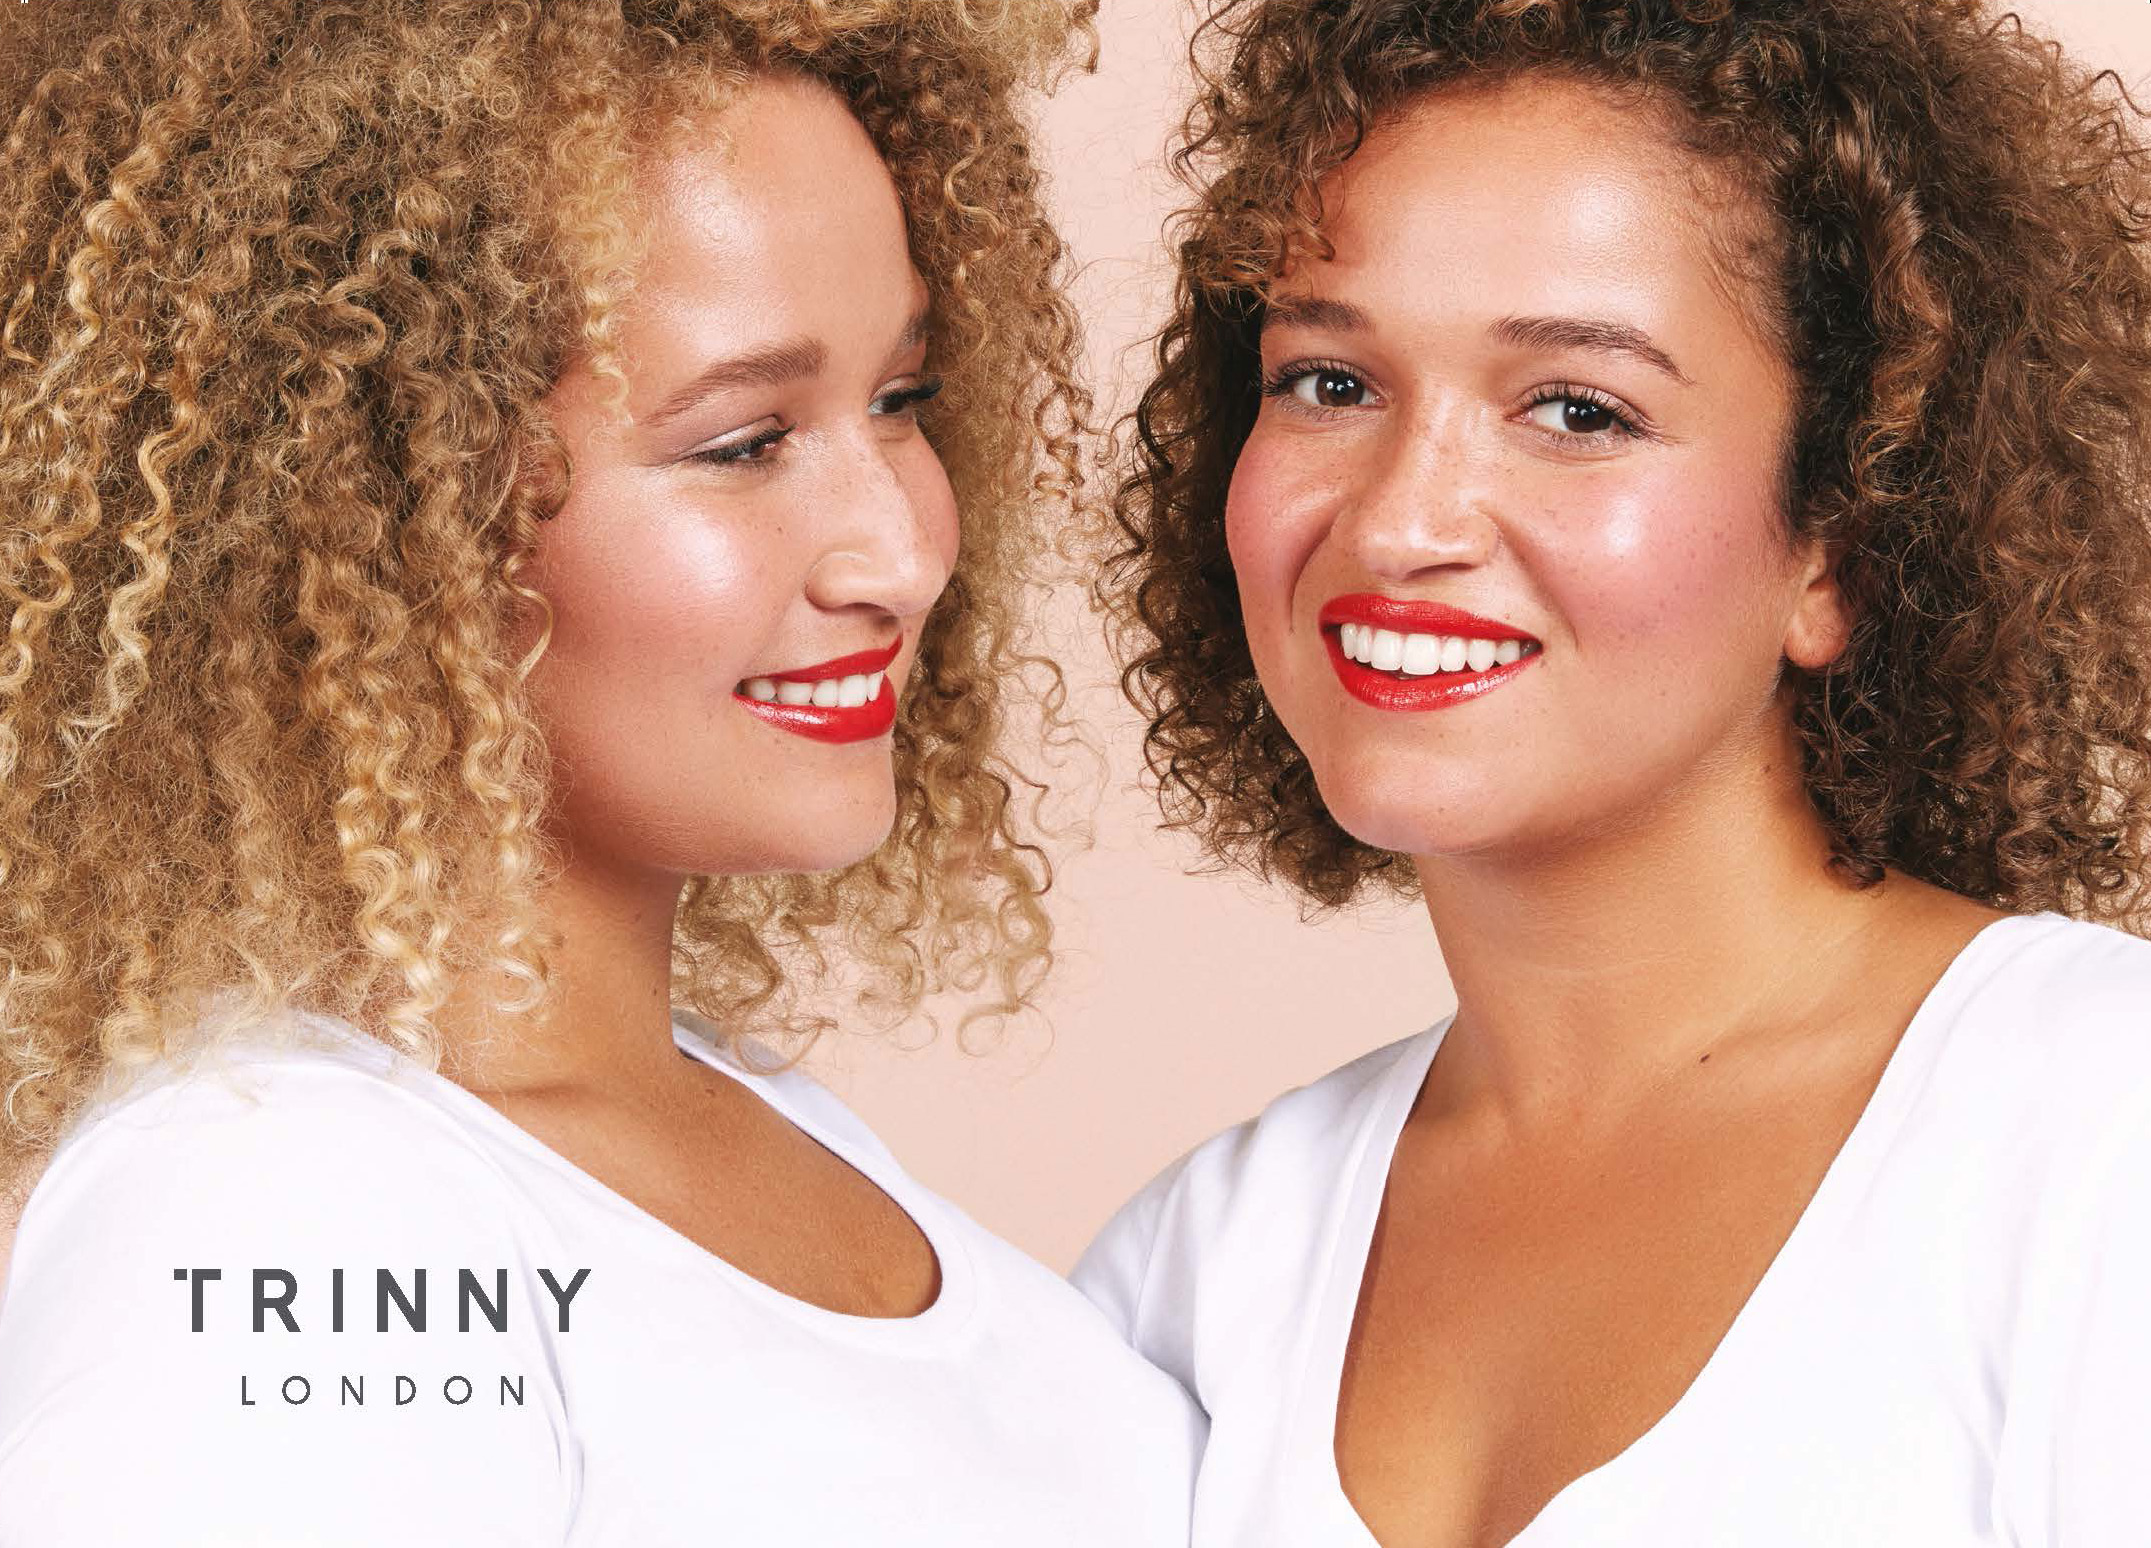 trinny_london_flyers_Page_8.jpg